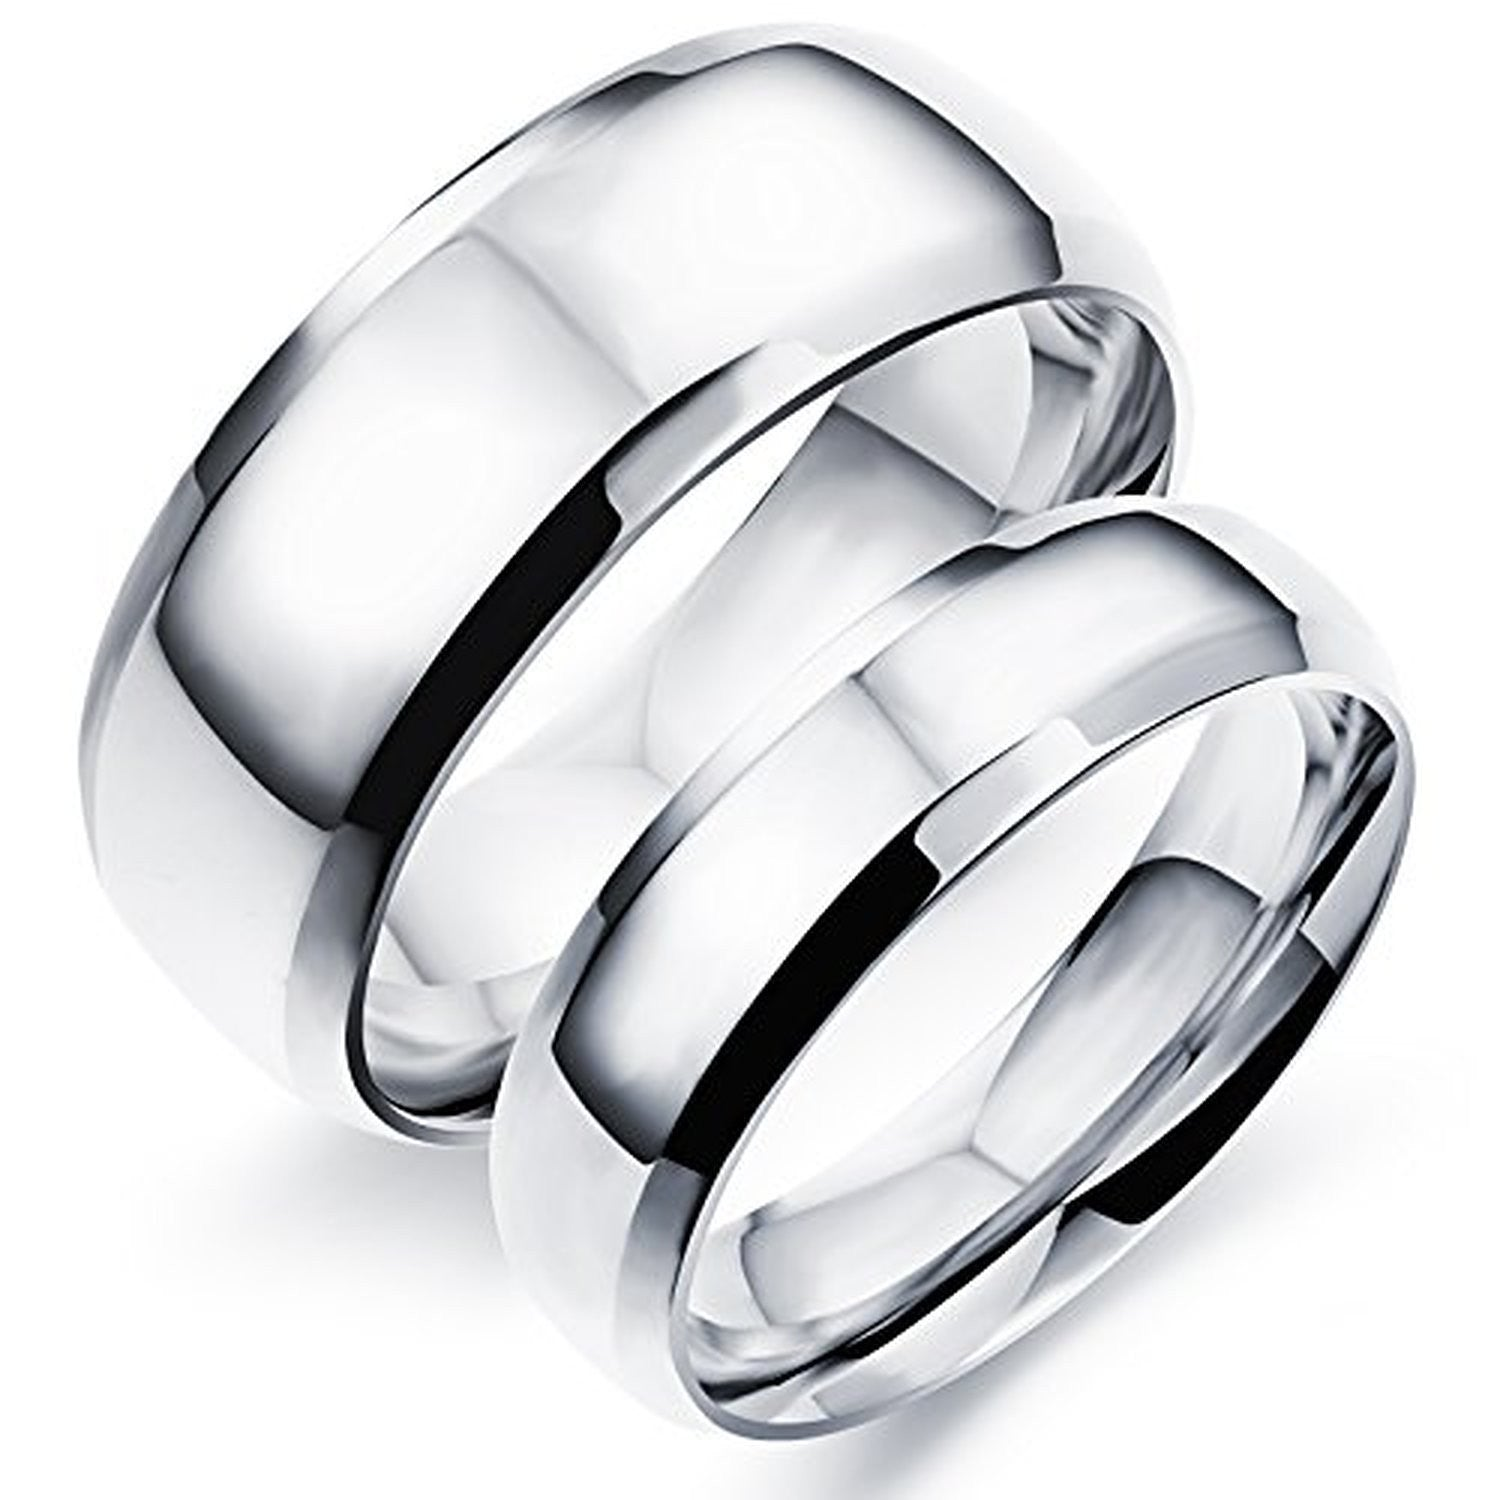 titanium steel love daily couples products rings black customize evermaker forever personalized women customized evermarker couple wedding